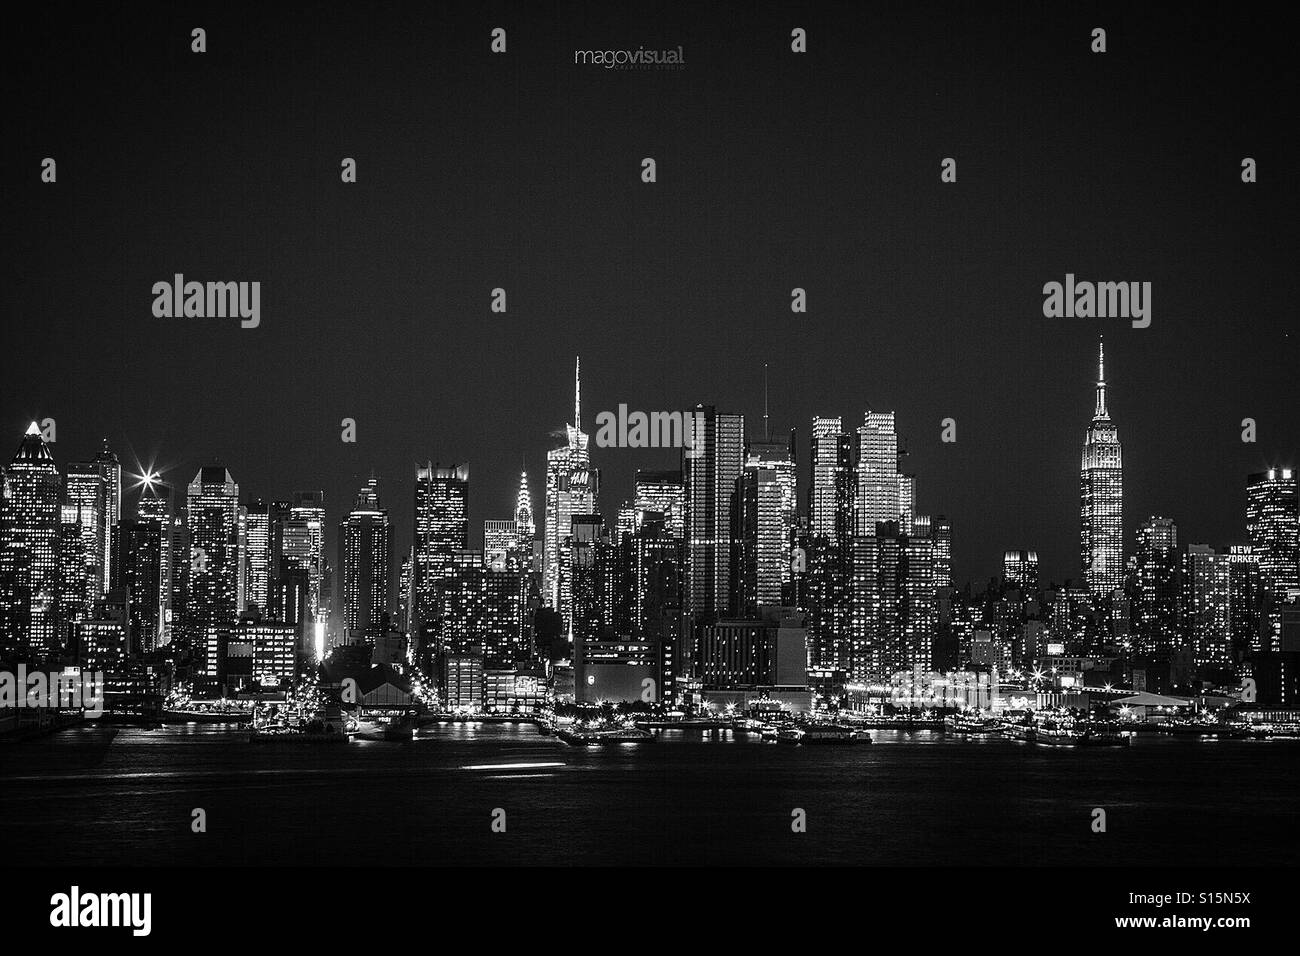 Amazing New York City - Stock Image